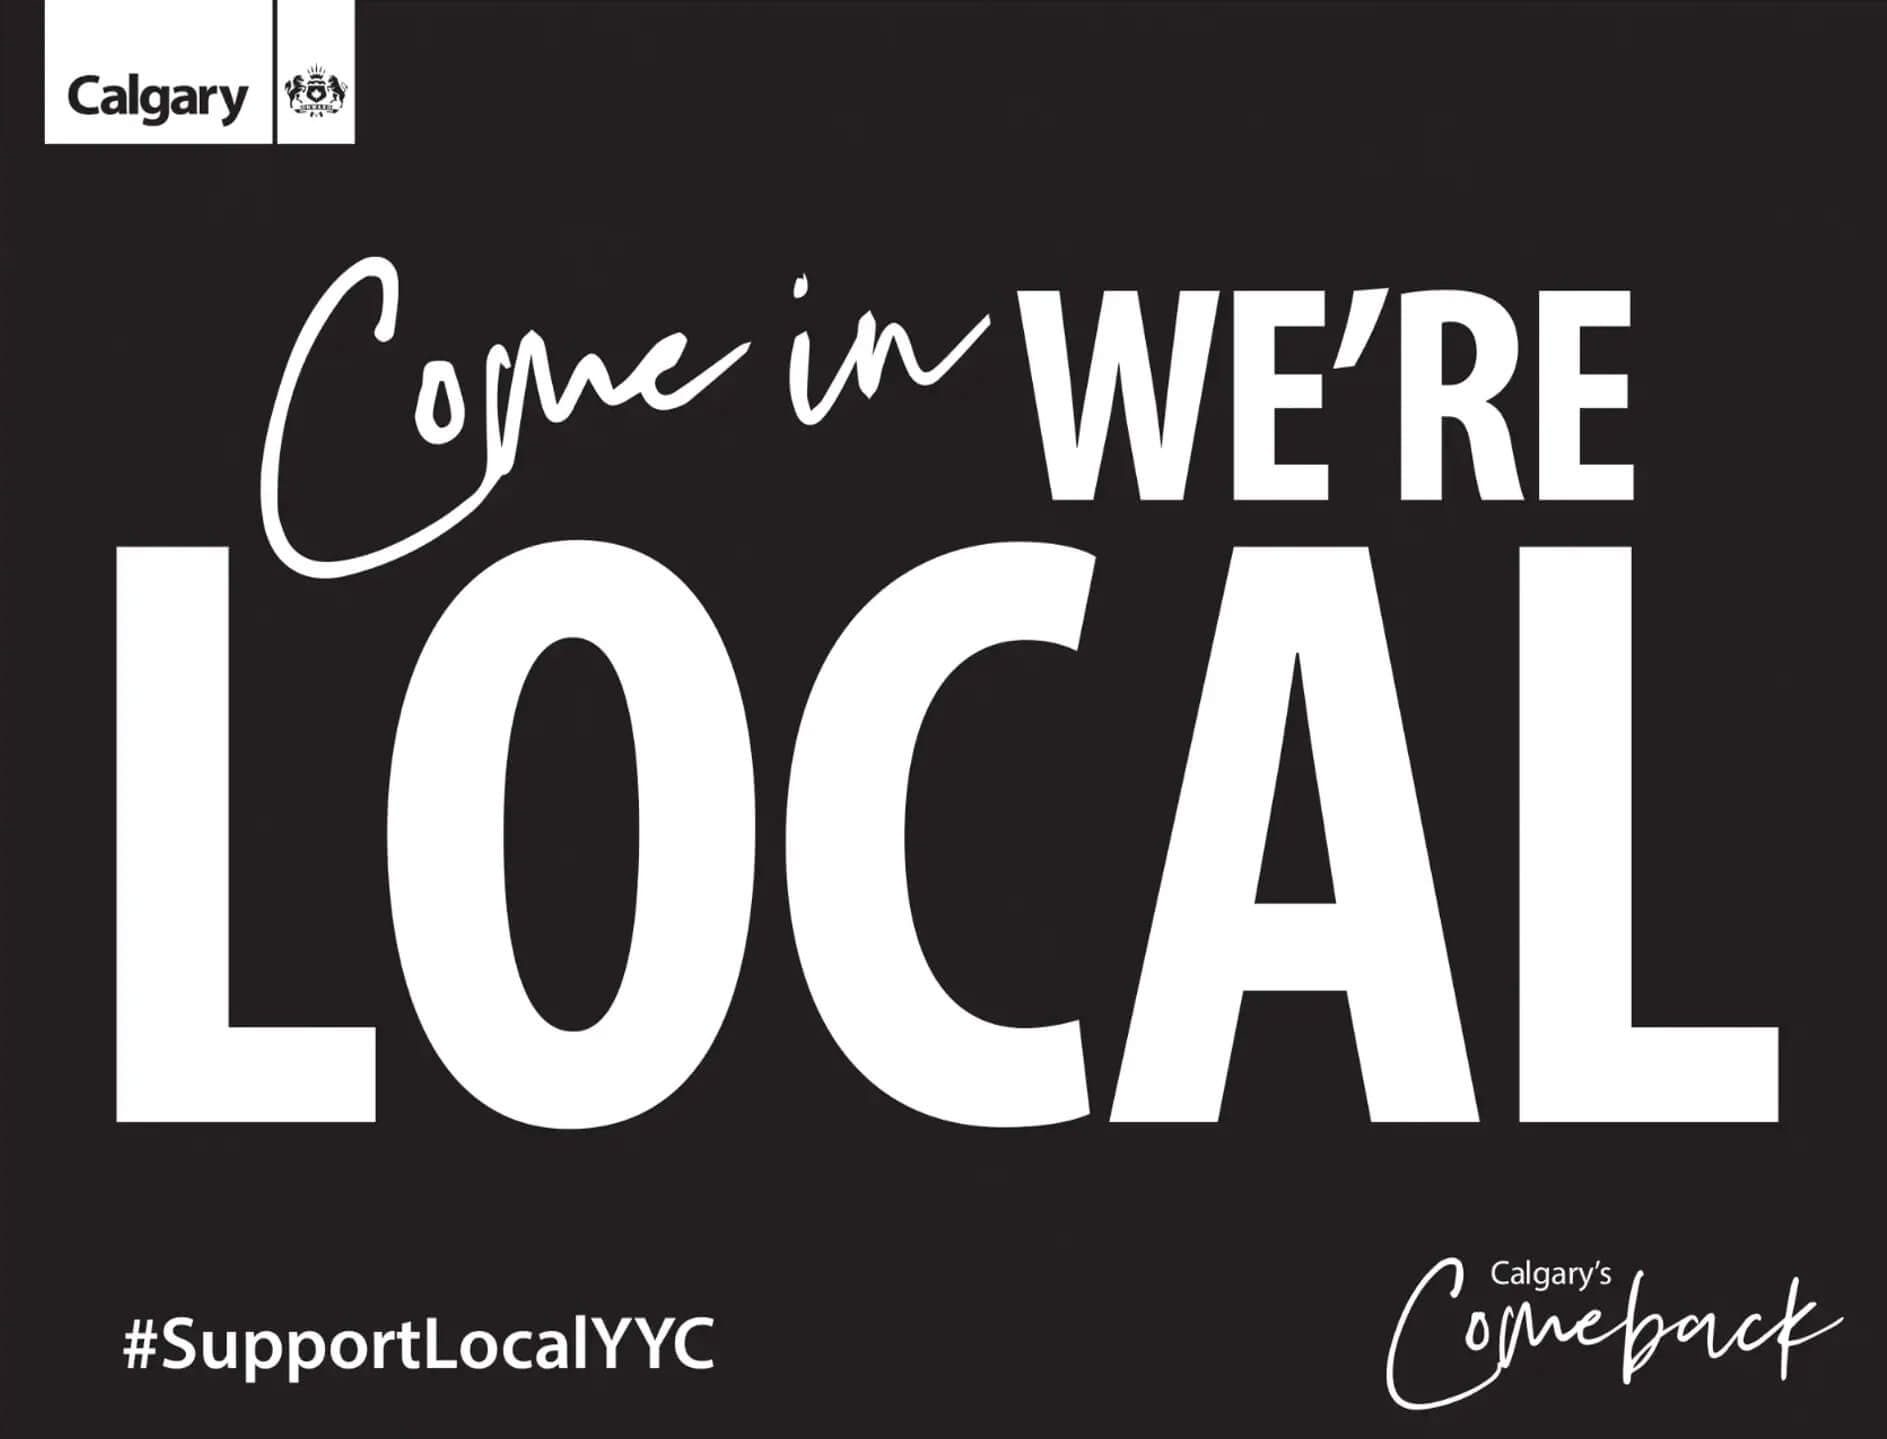 'Come In, We're Local' image from The City of Calgary